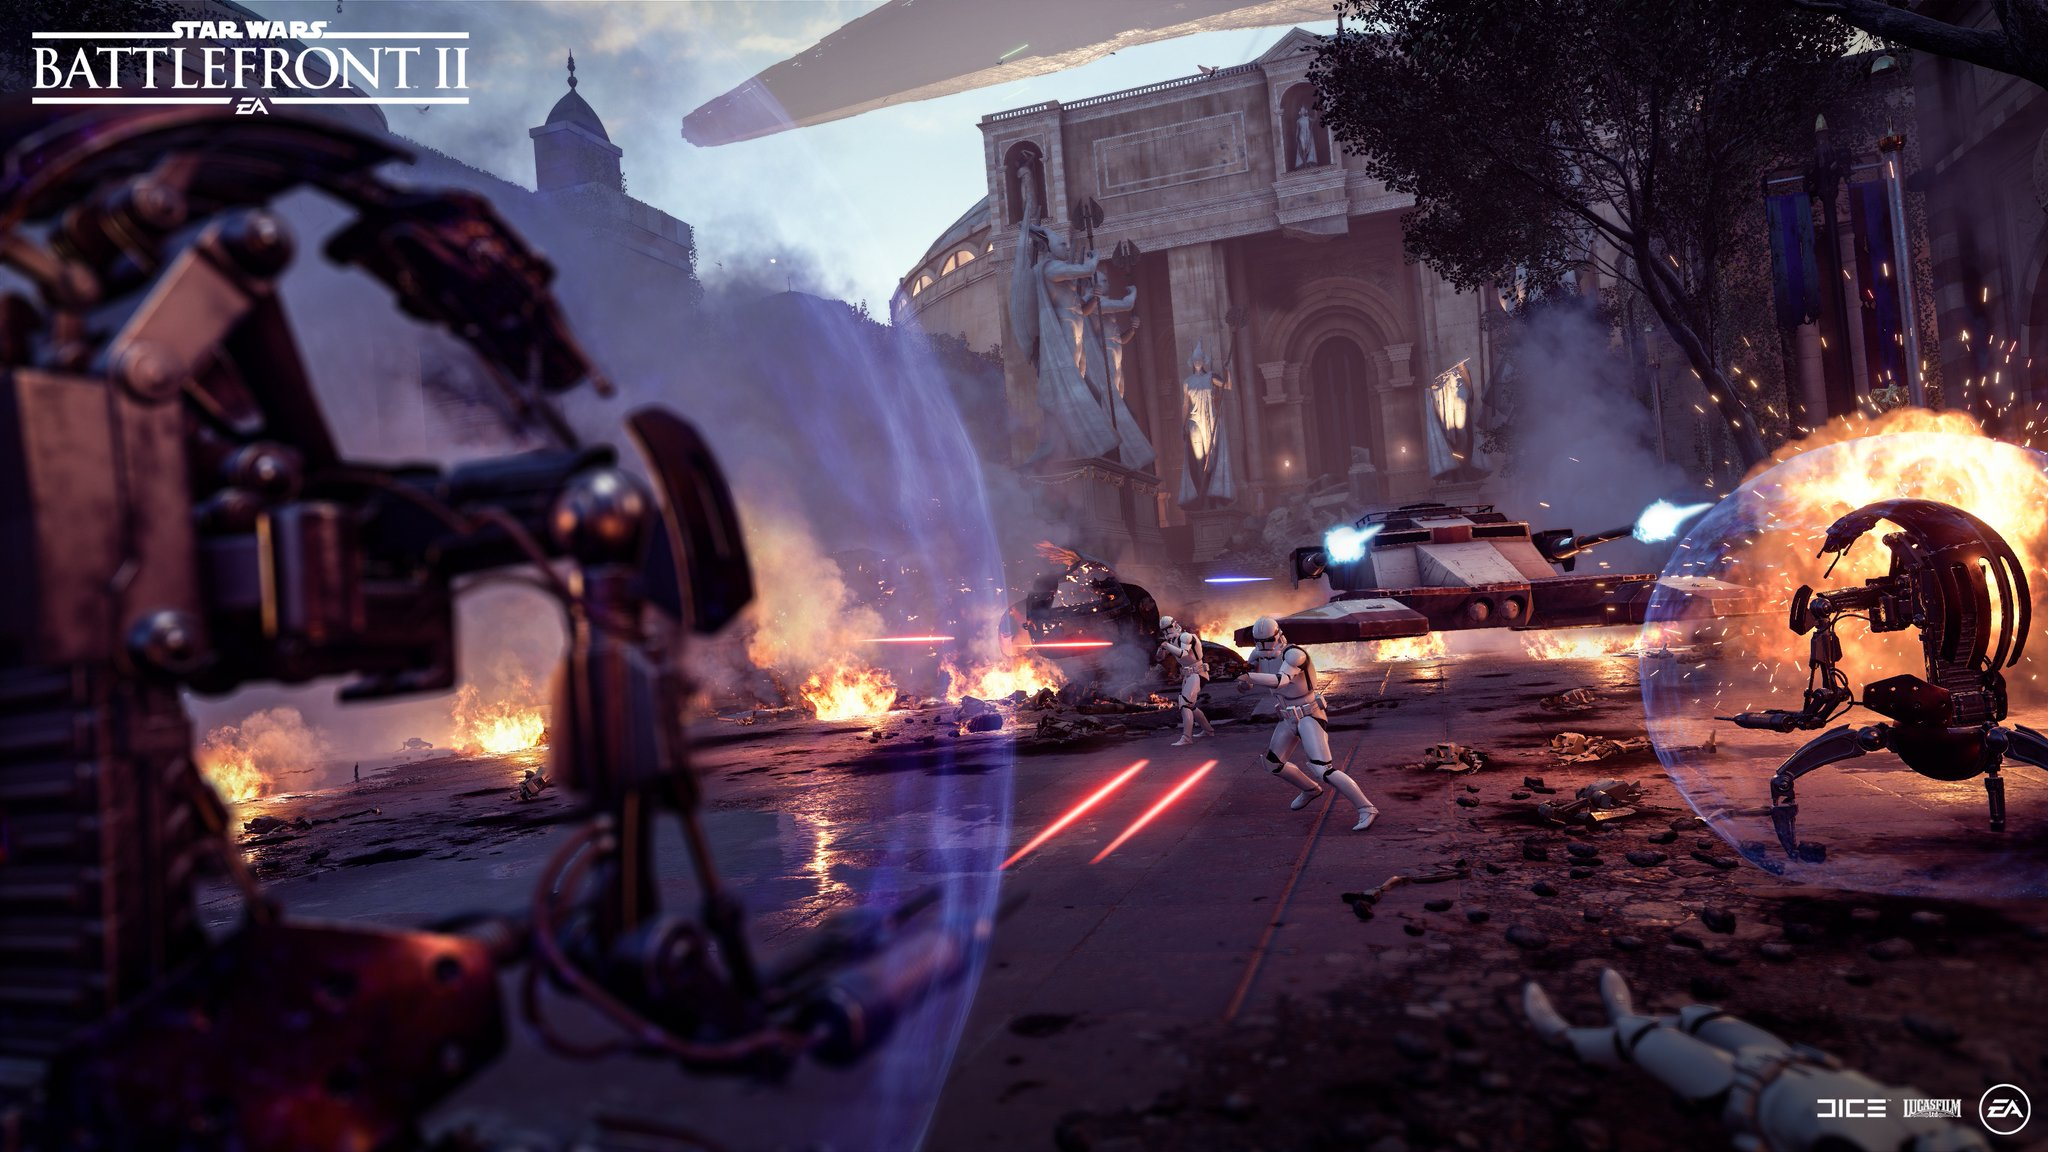 Where are those Droidekas Update